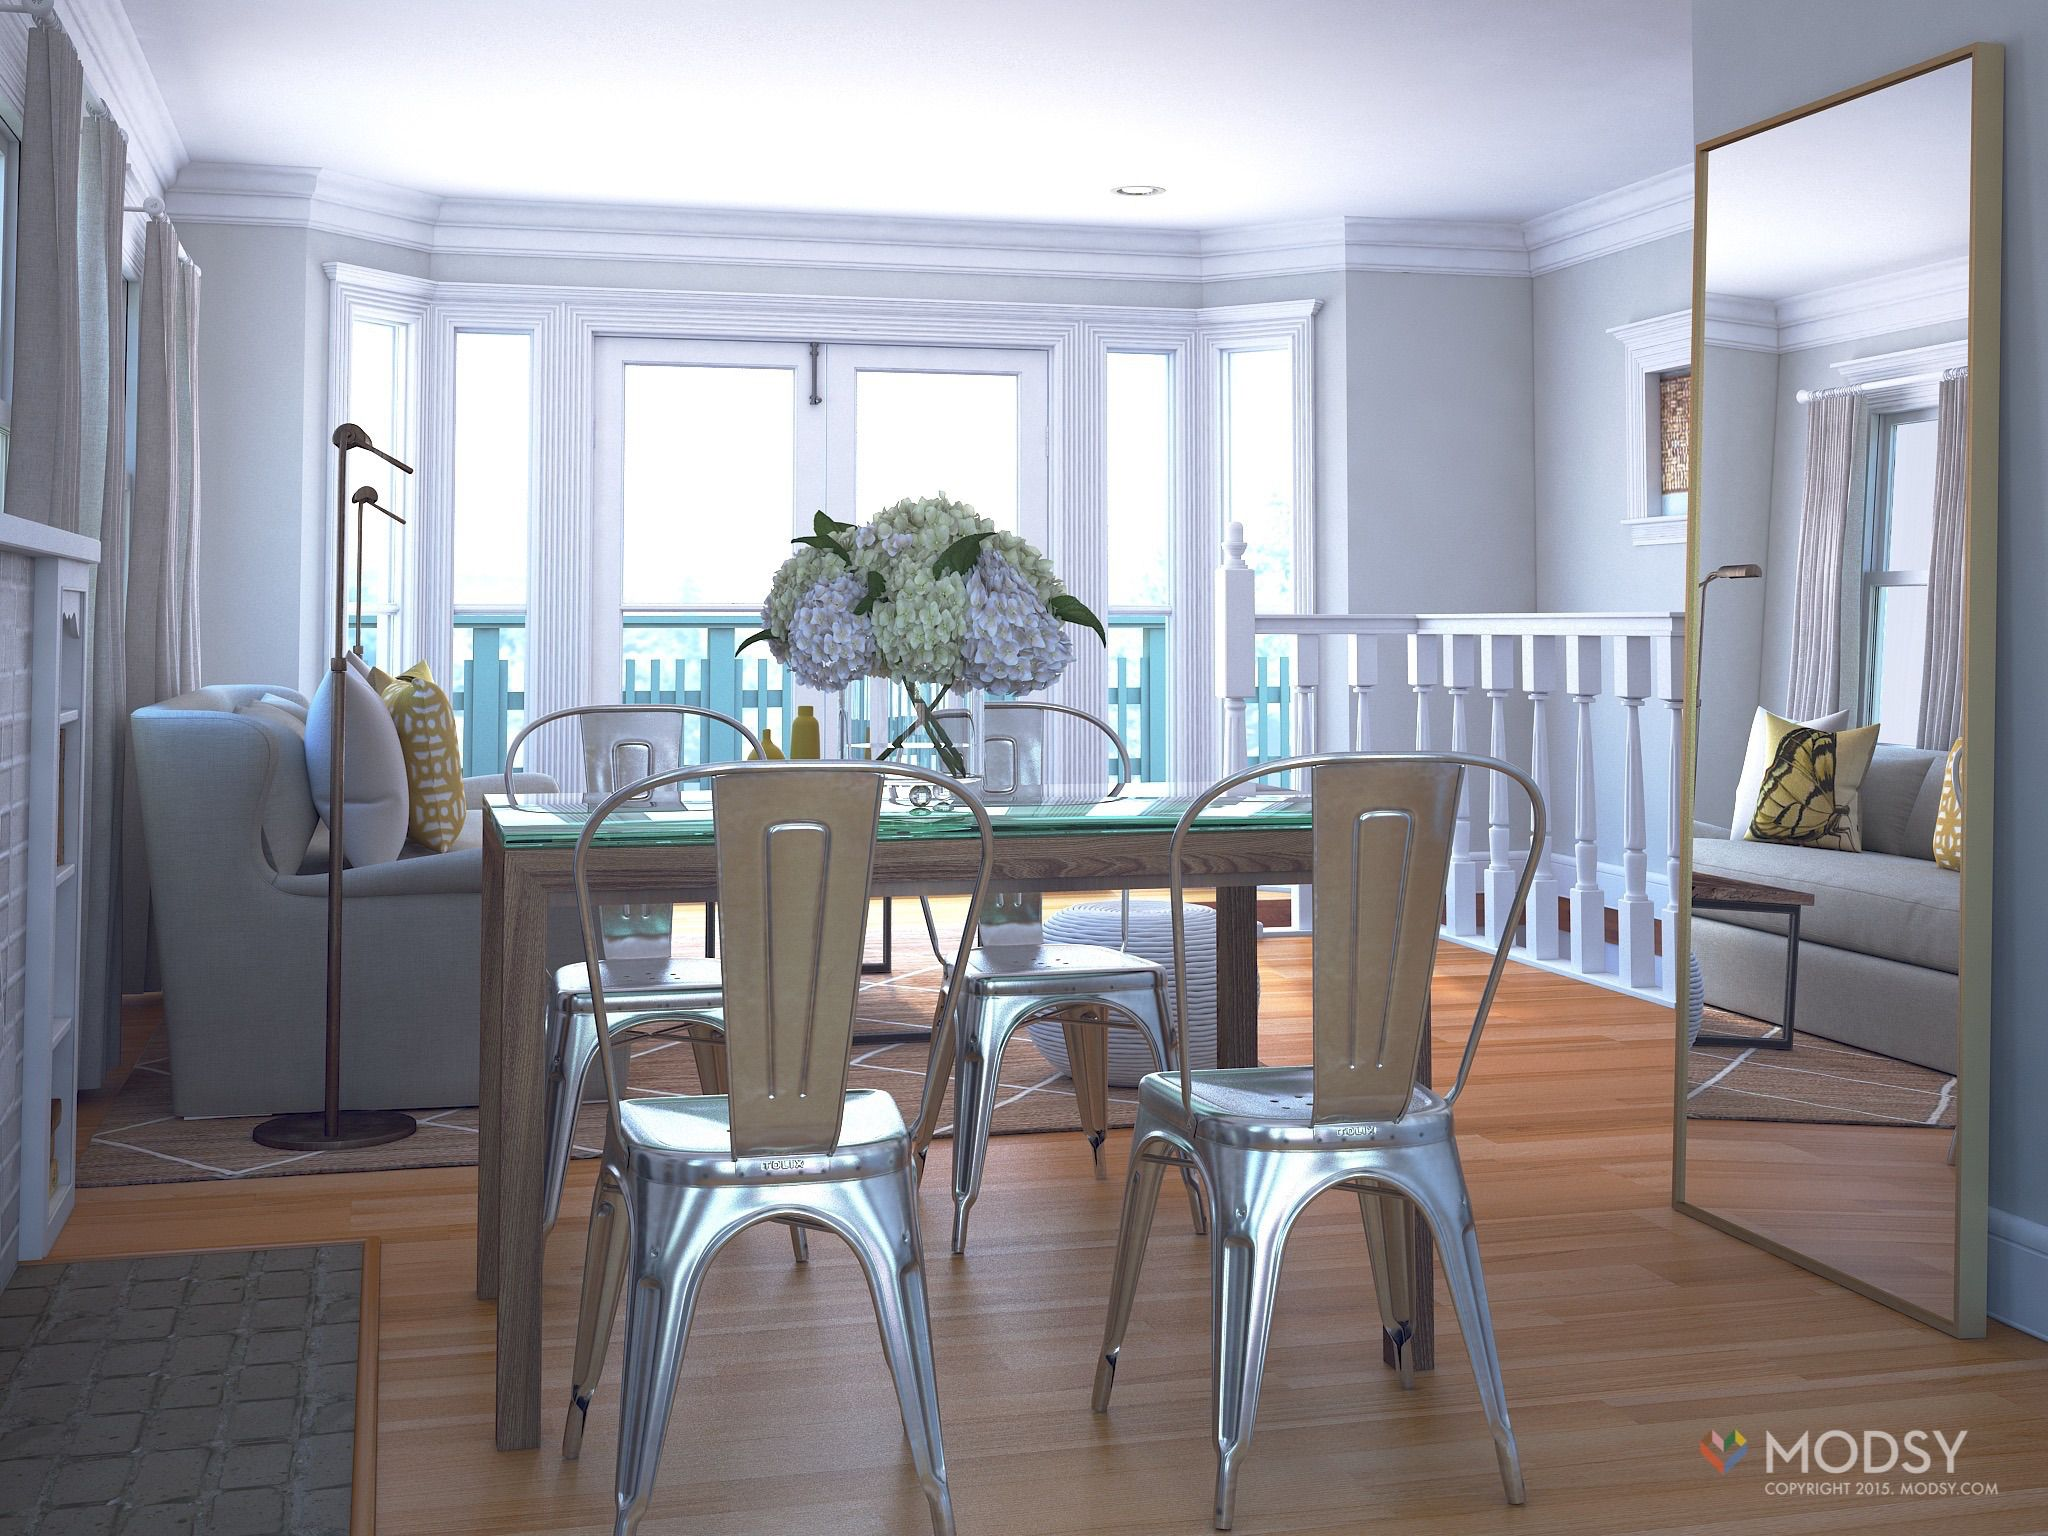 modsy 3d rendering of a rustic open living to dining room